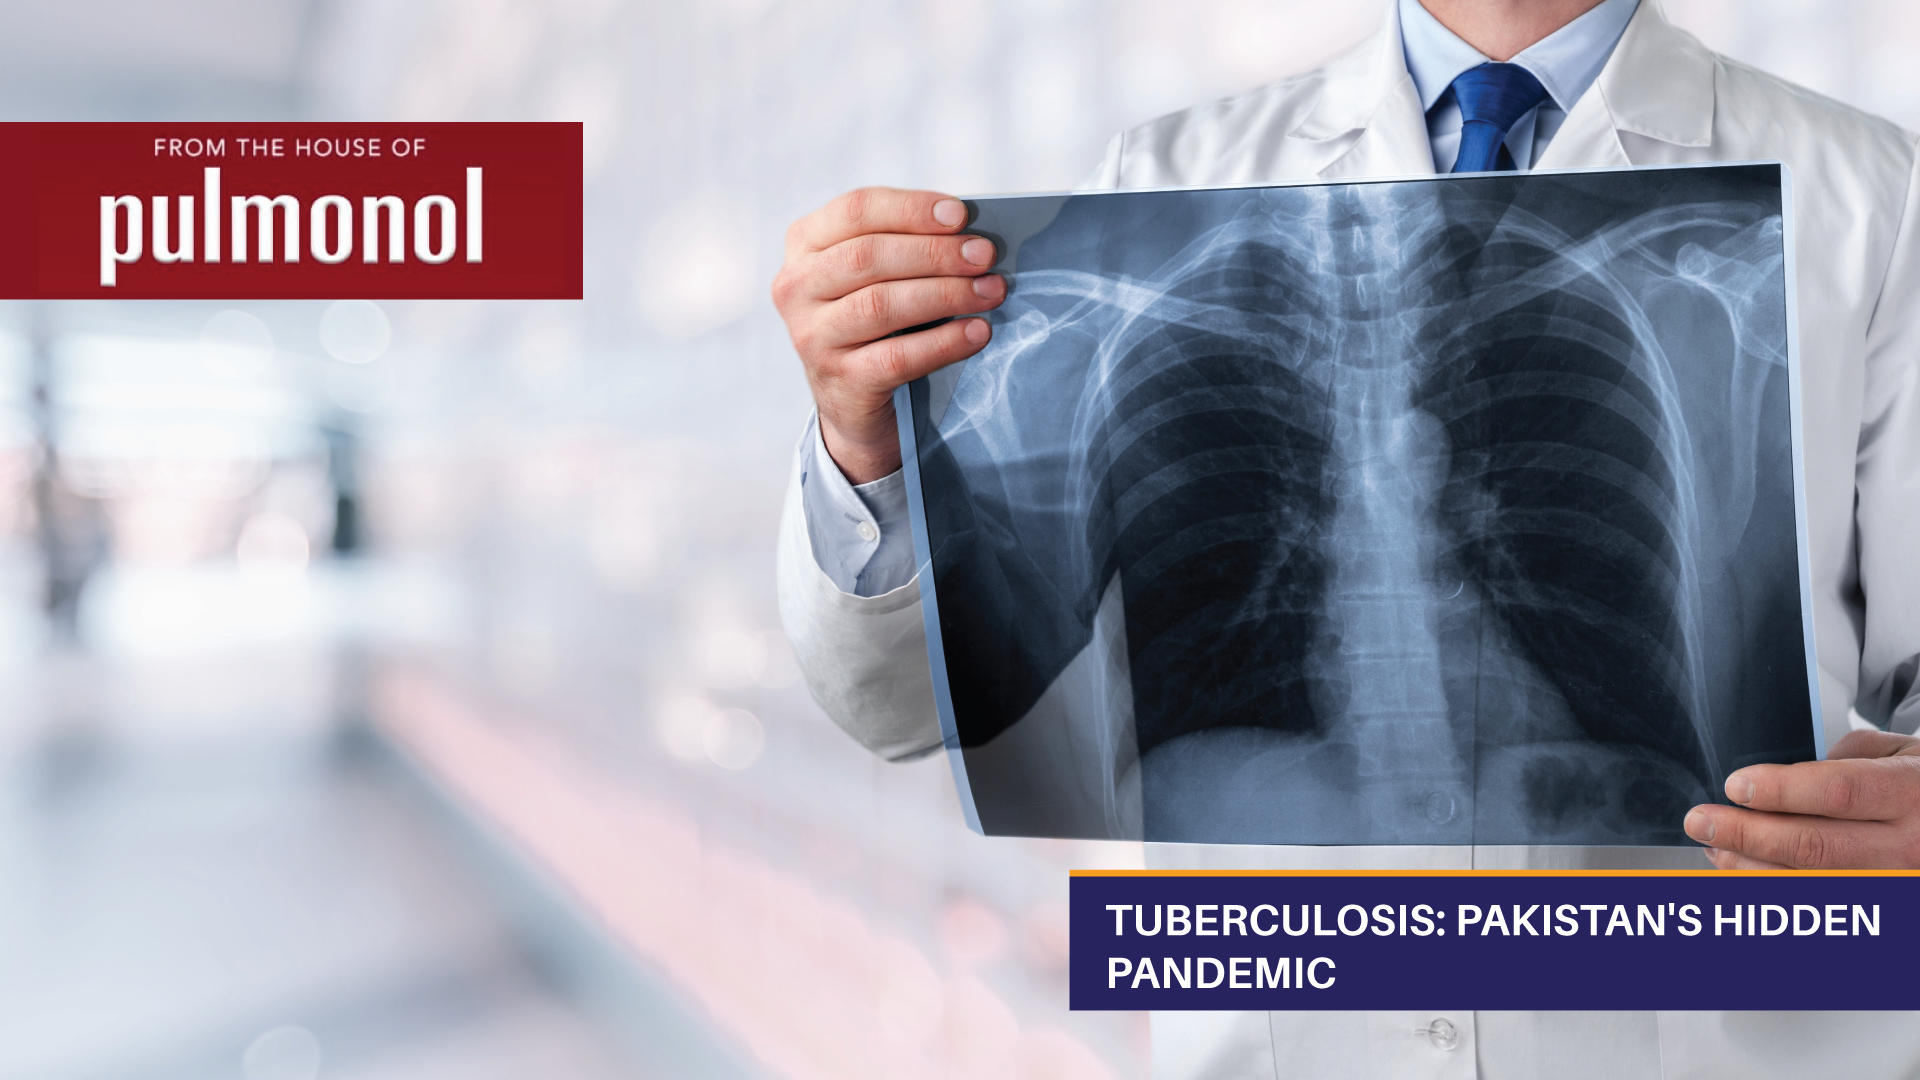 Tuberculosis: Pakistan's Hidden Pandemic